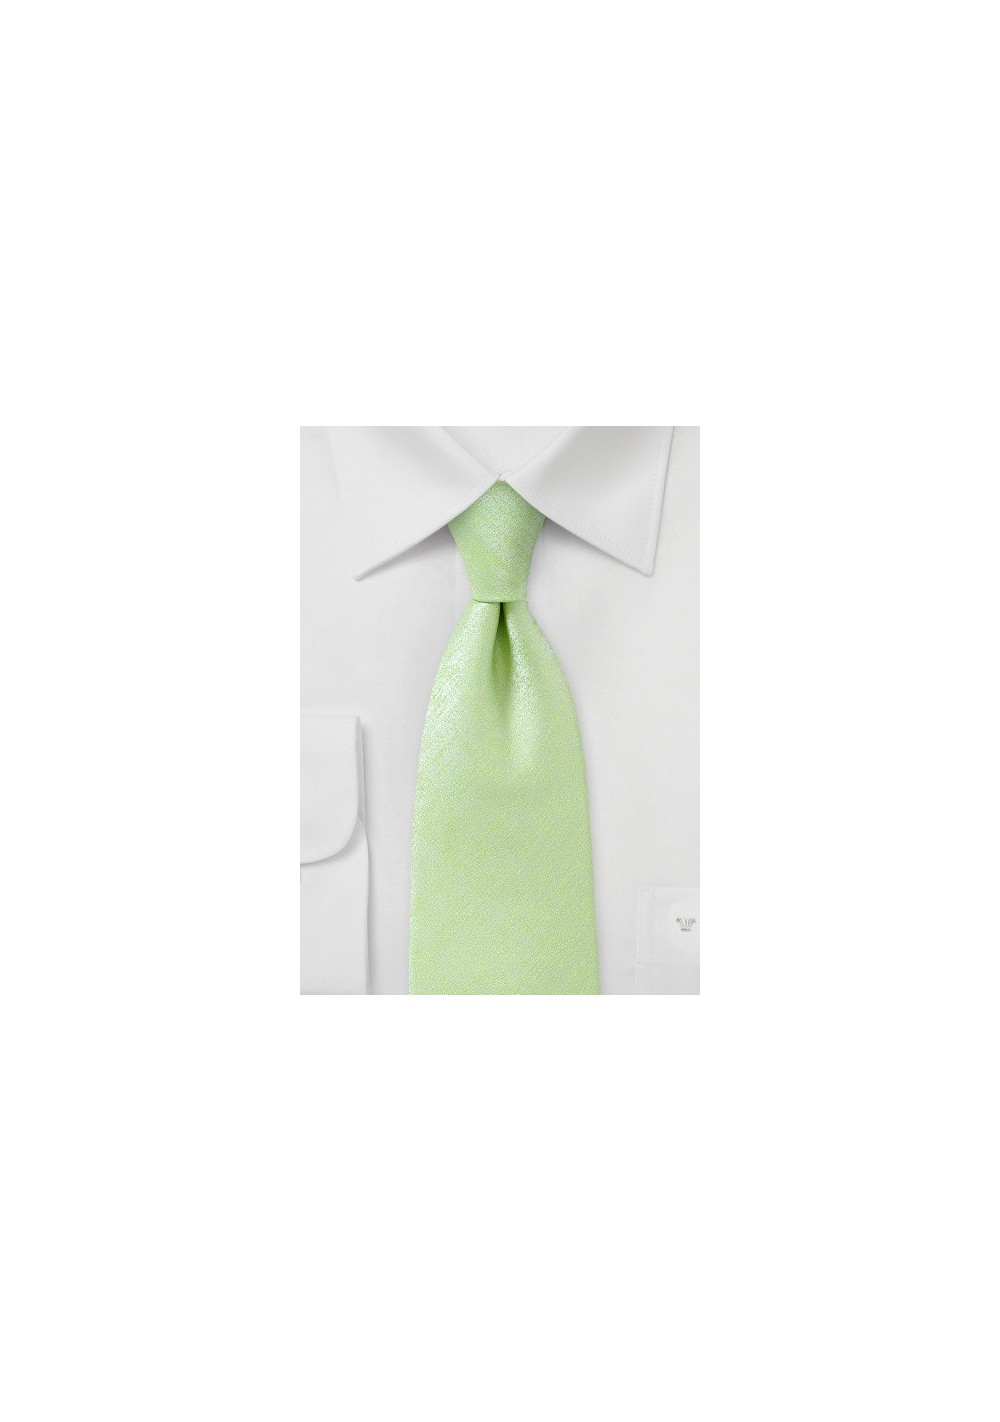 Heathered Tie in Lime